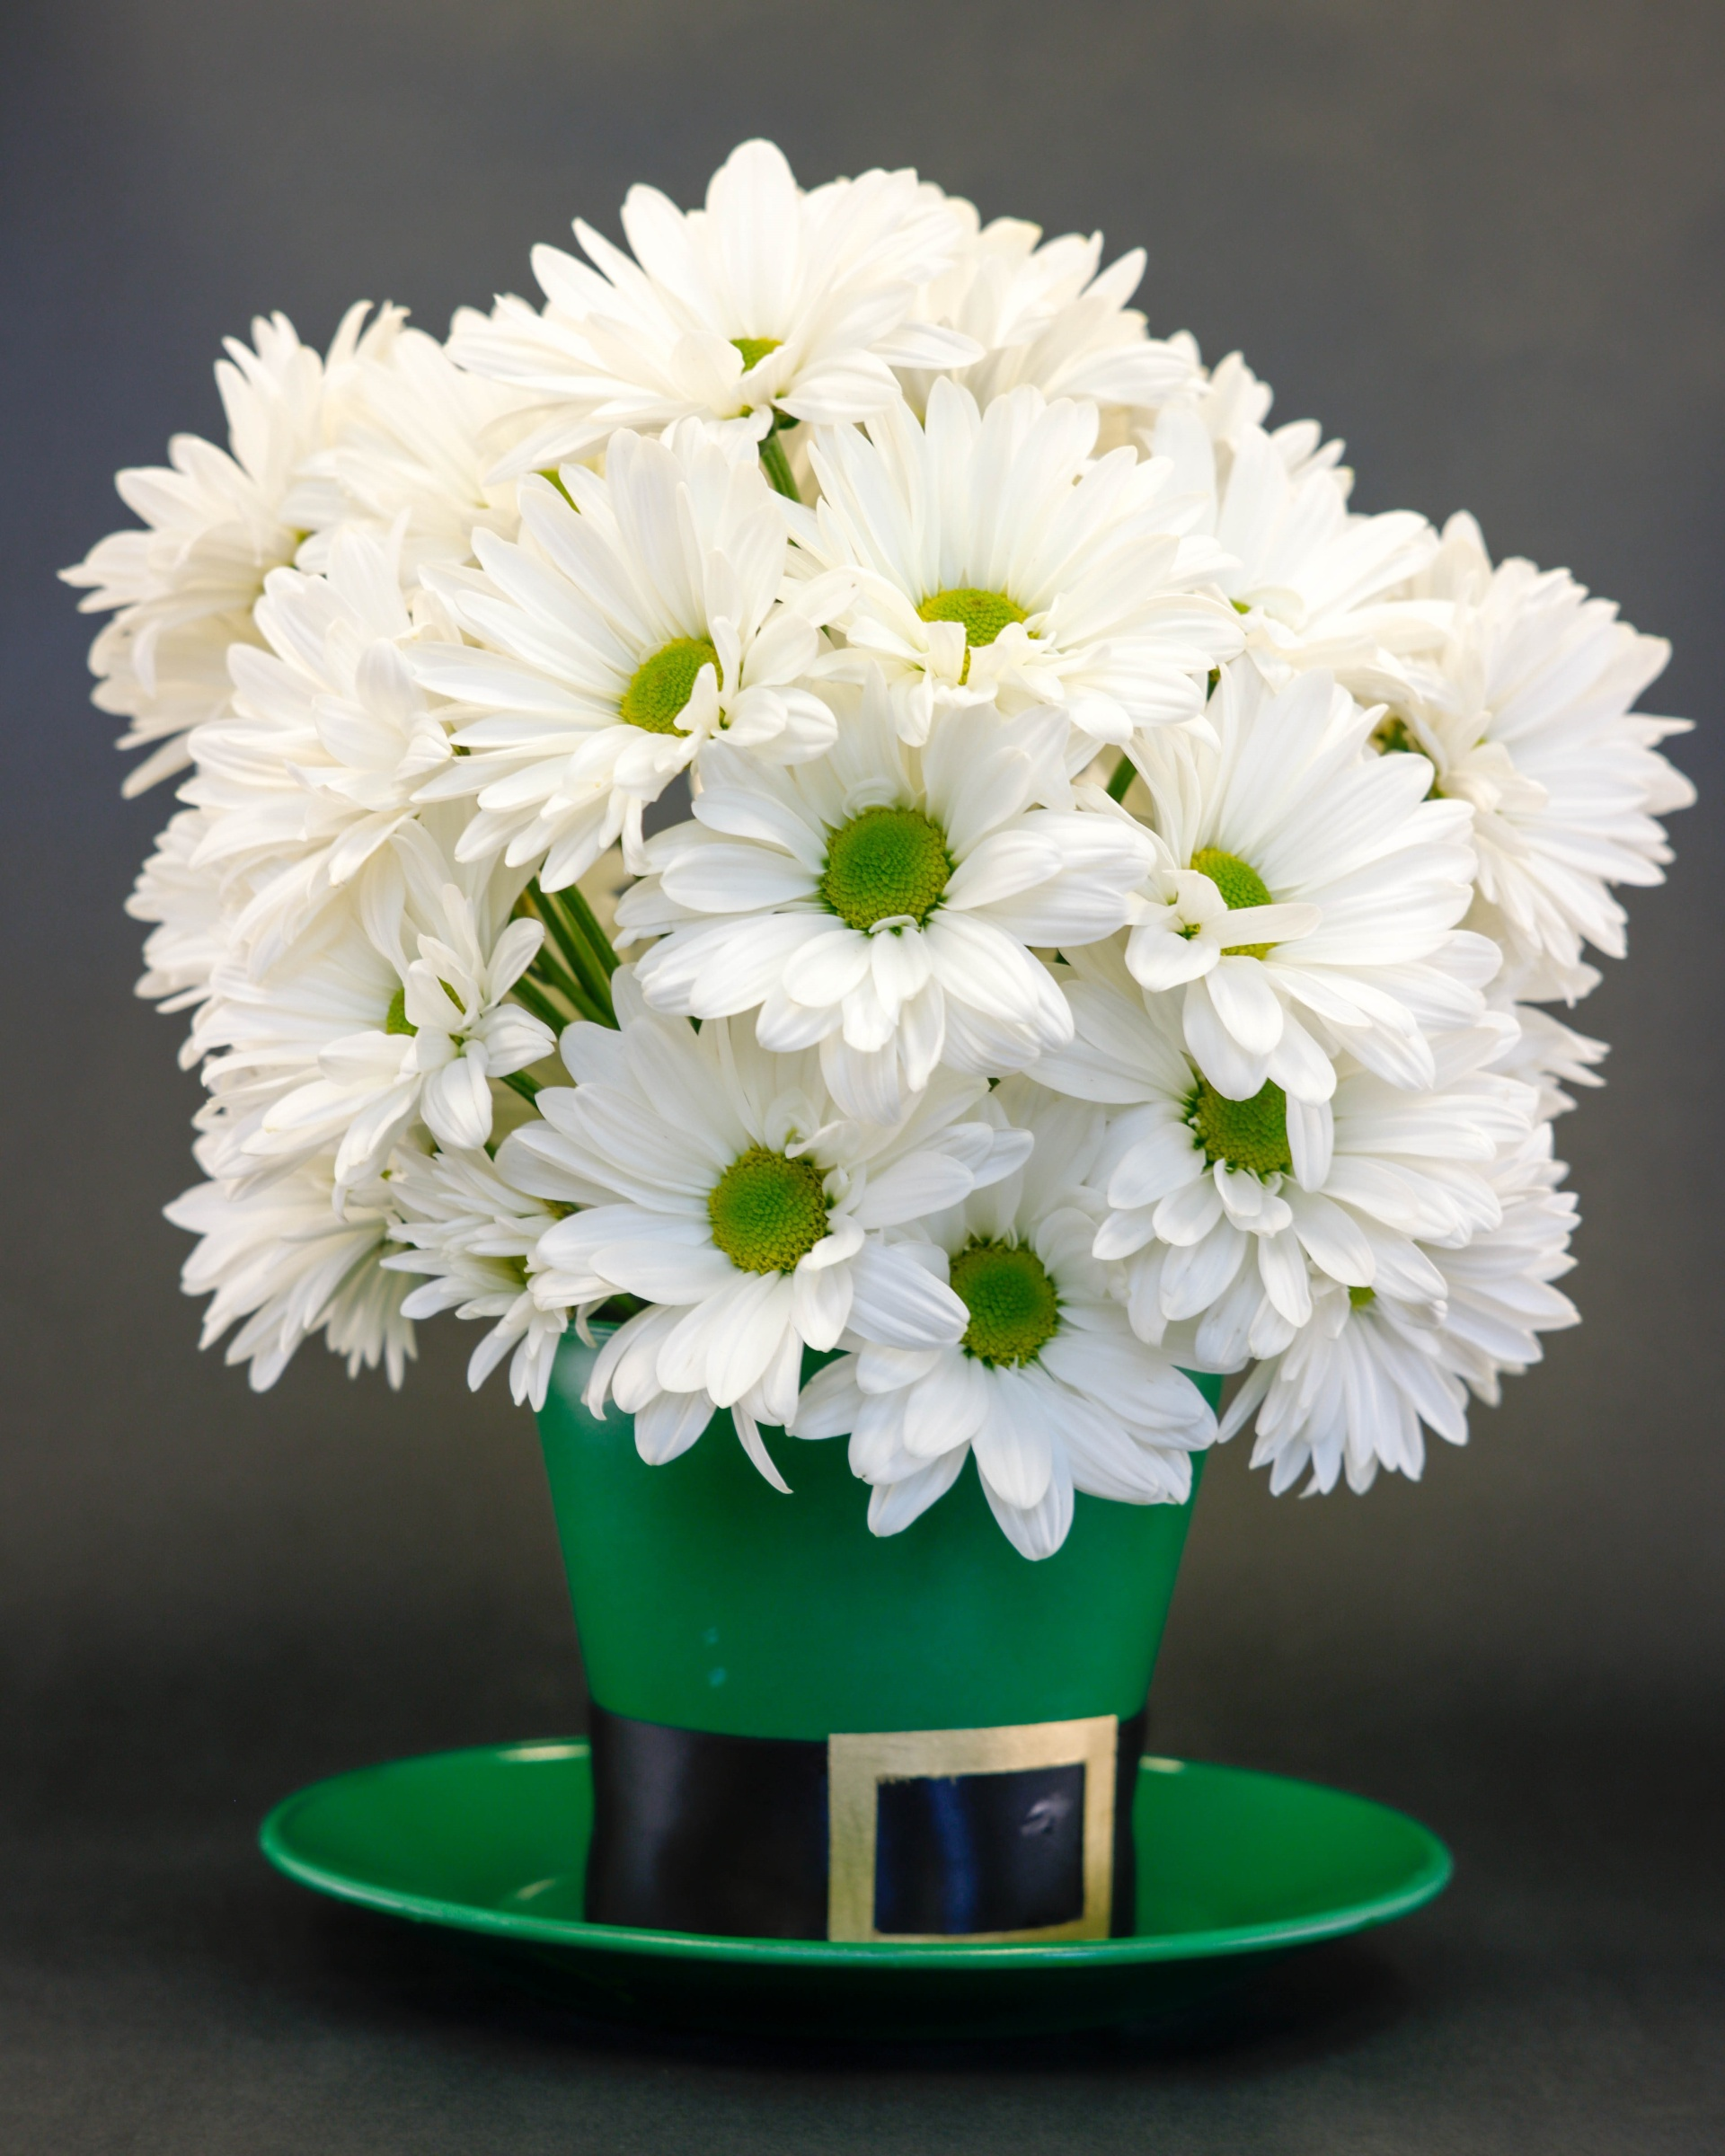 Warden FFA Cougs in Bloom, March 2020 Centerpiece